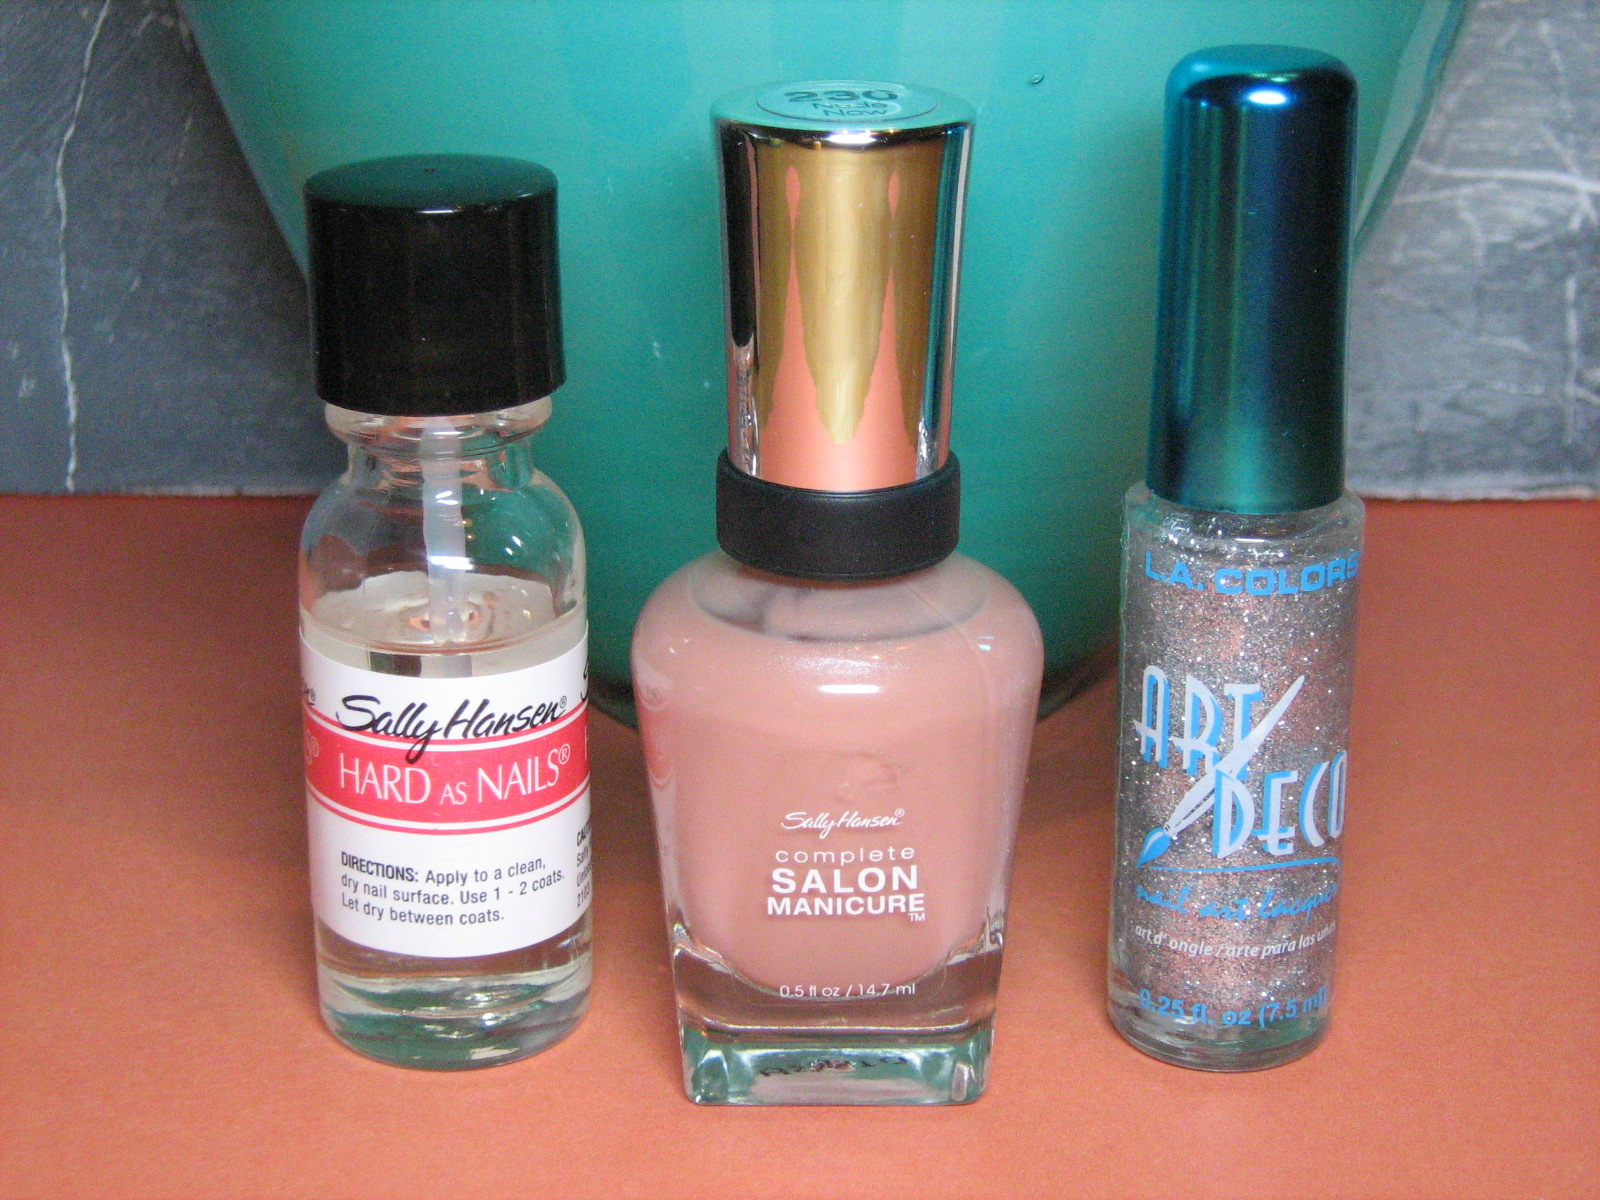 Nude Glitter Manicure Polishes